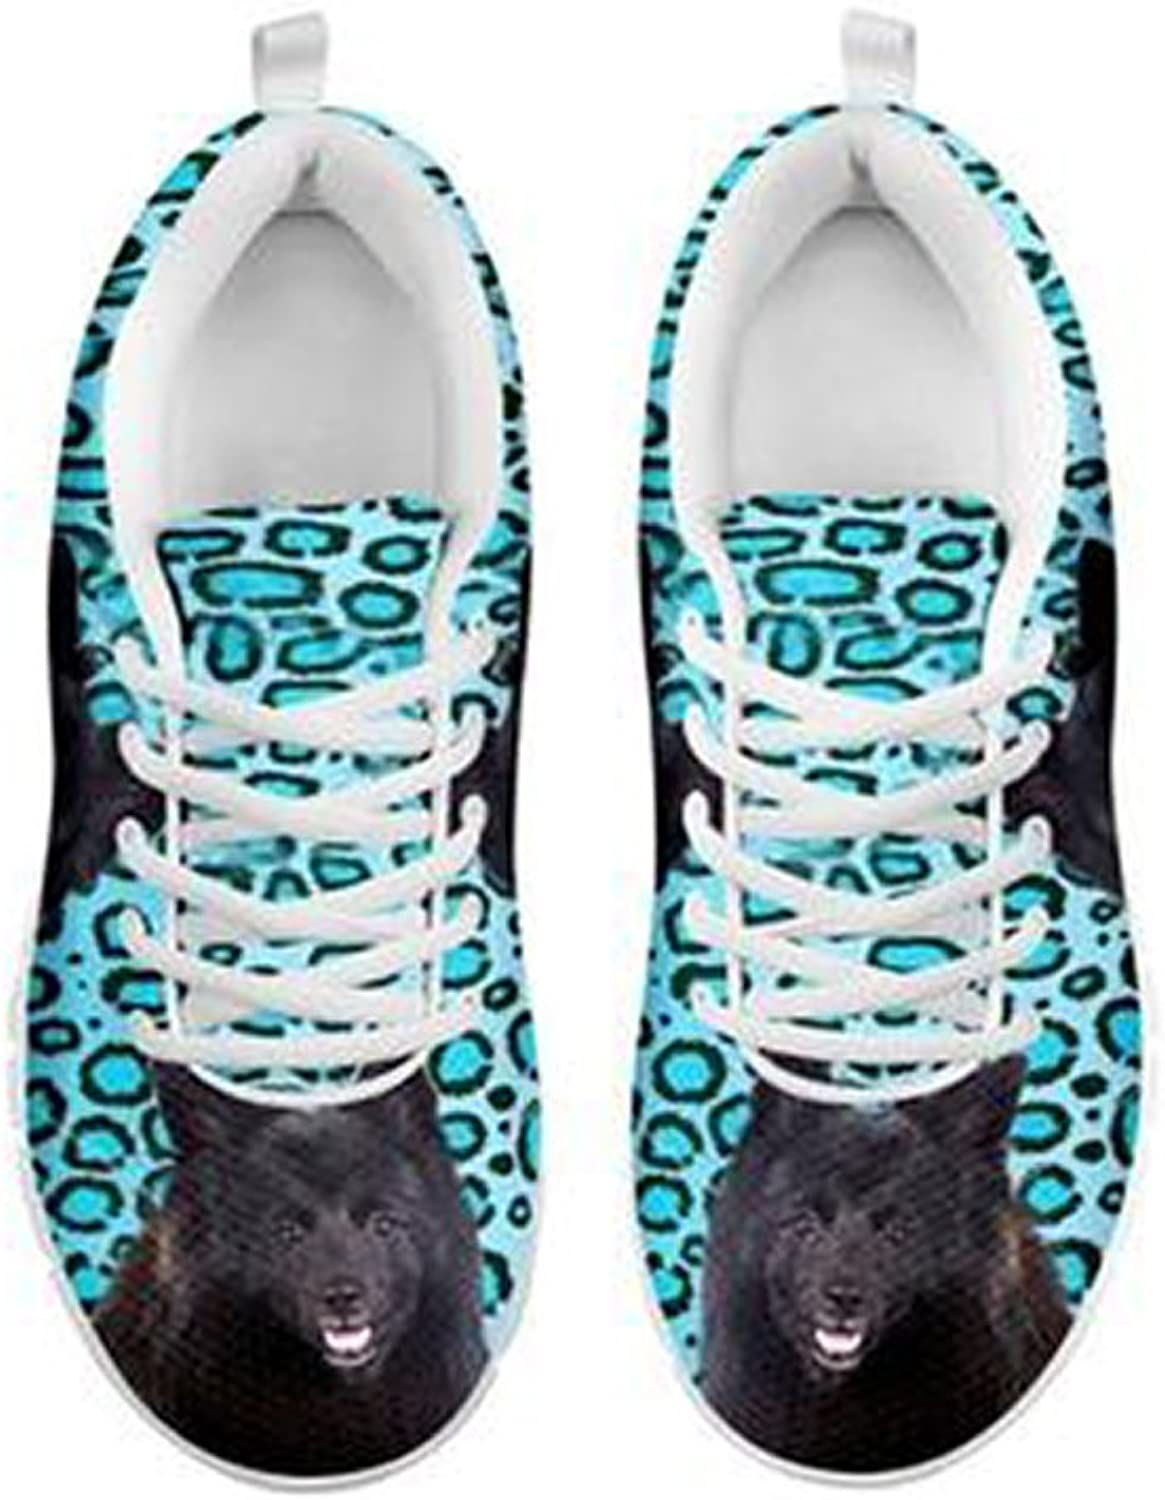 shoestup Cute German Spitz Dog Print Men's Casual Sneakers White